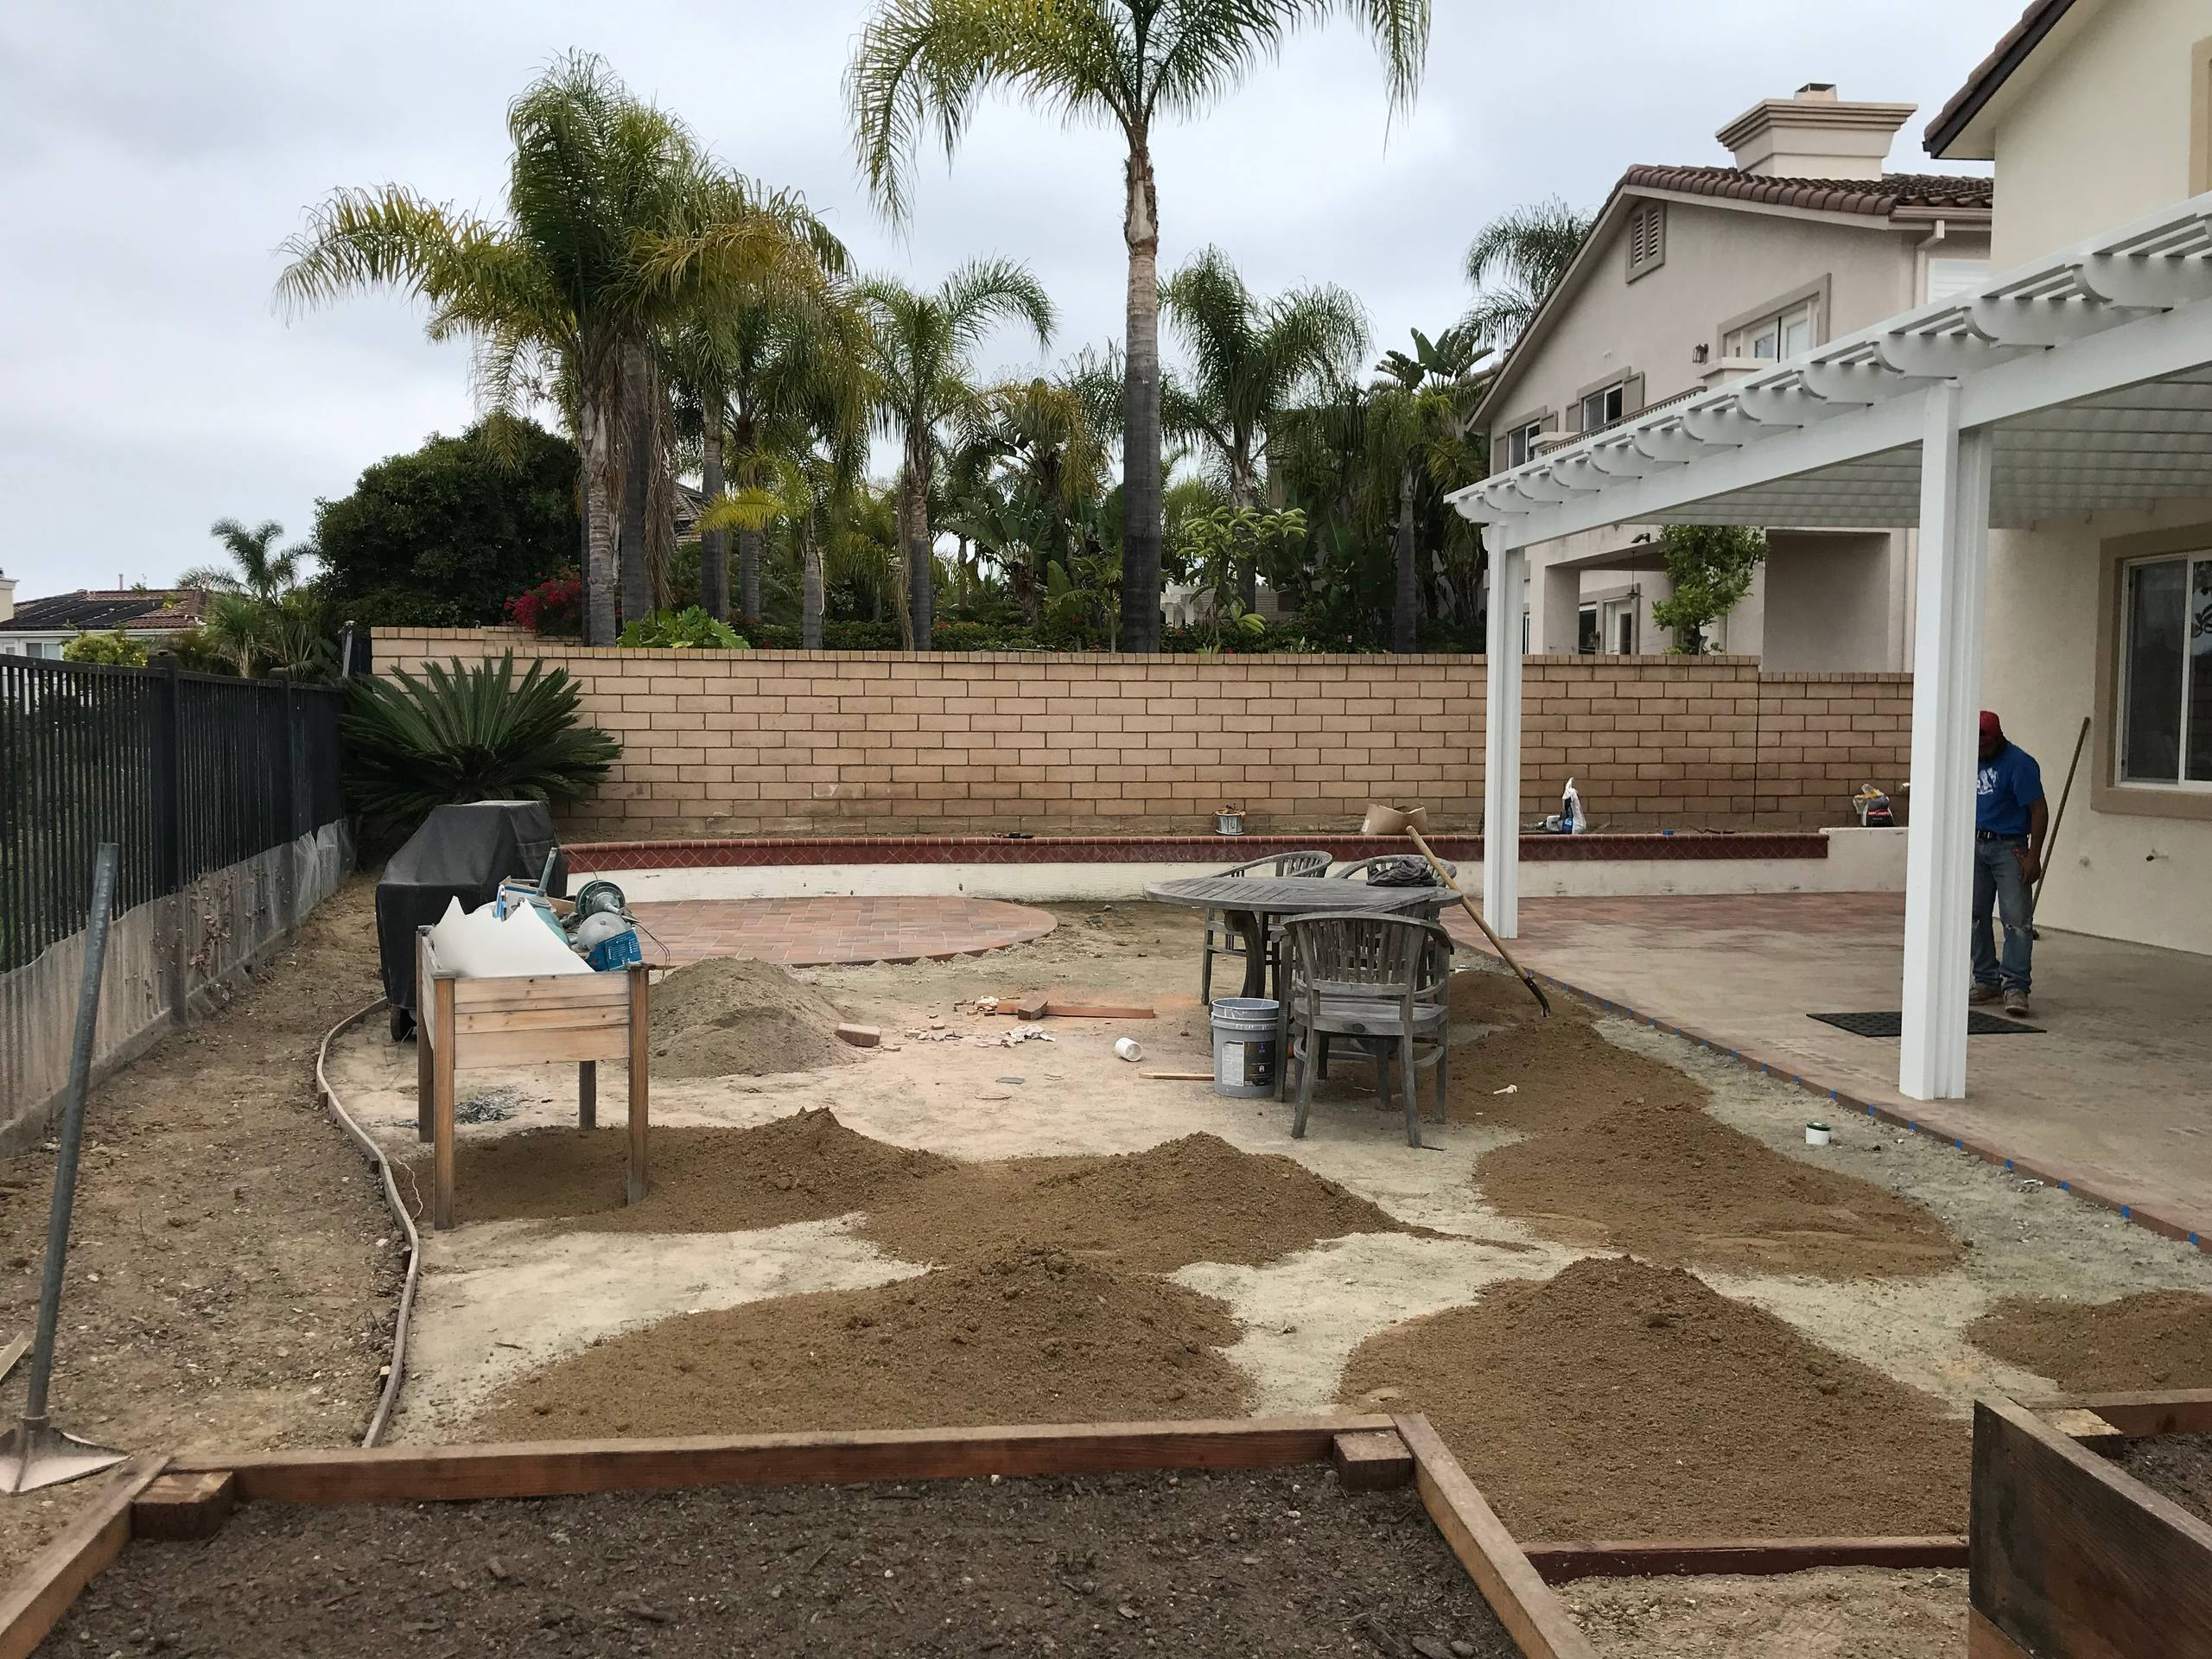 Prep for Artificial Turf and Plants